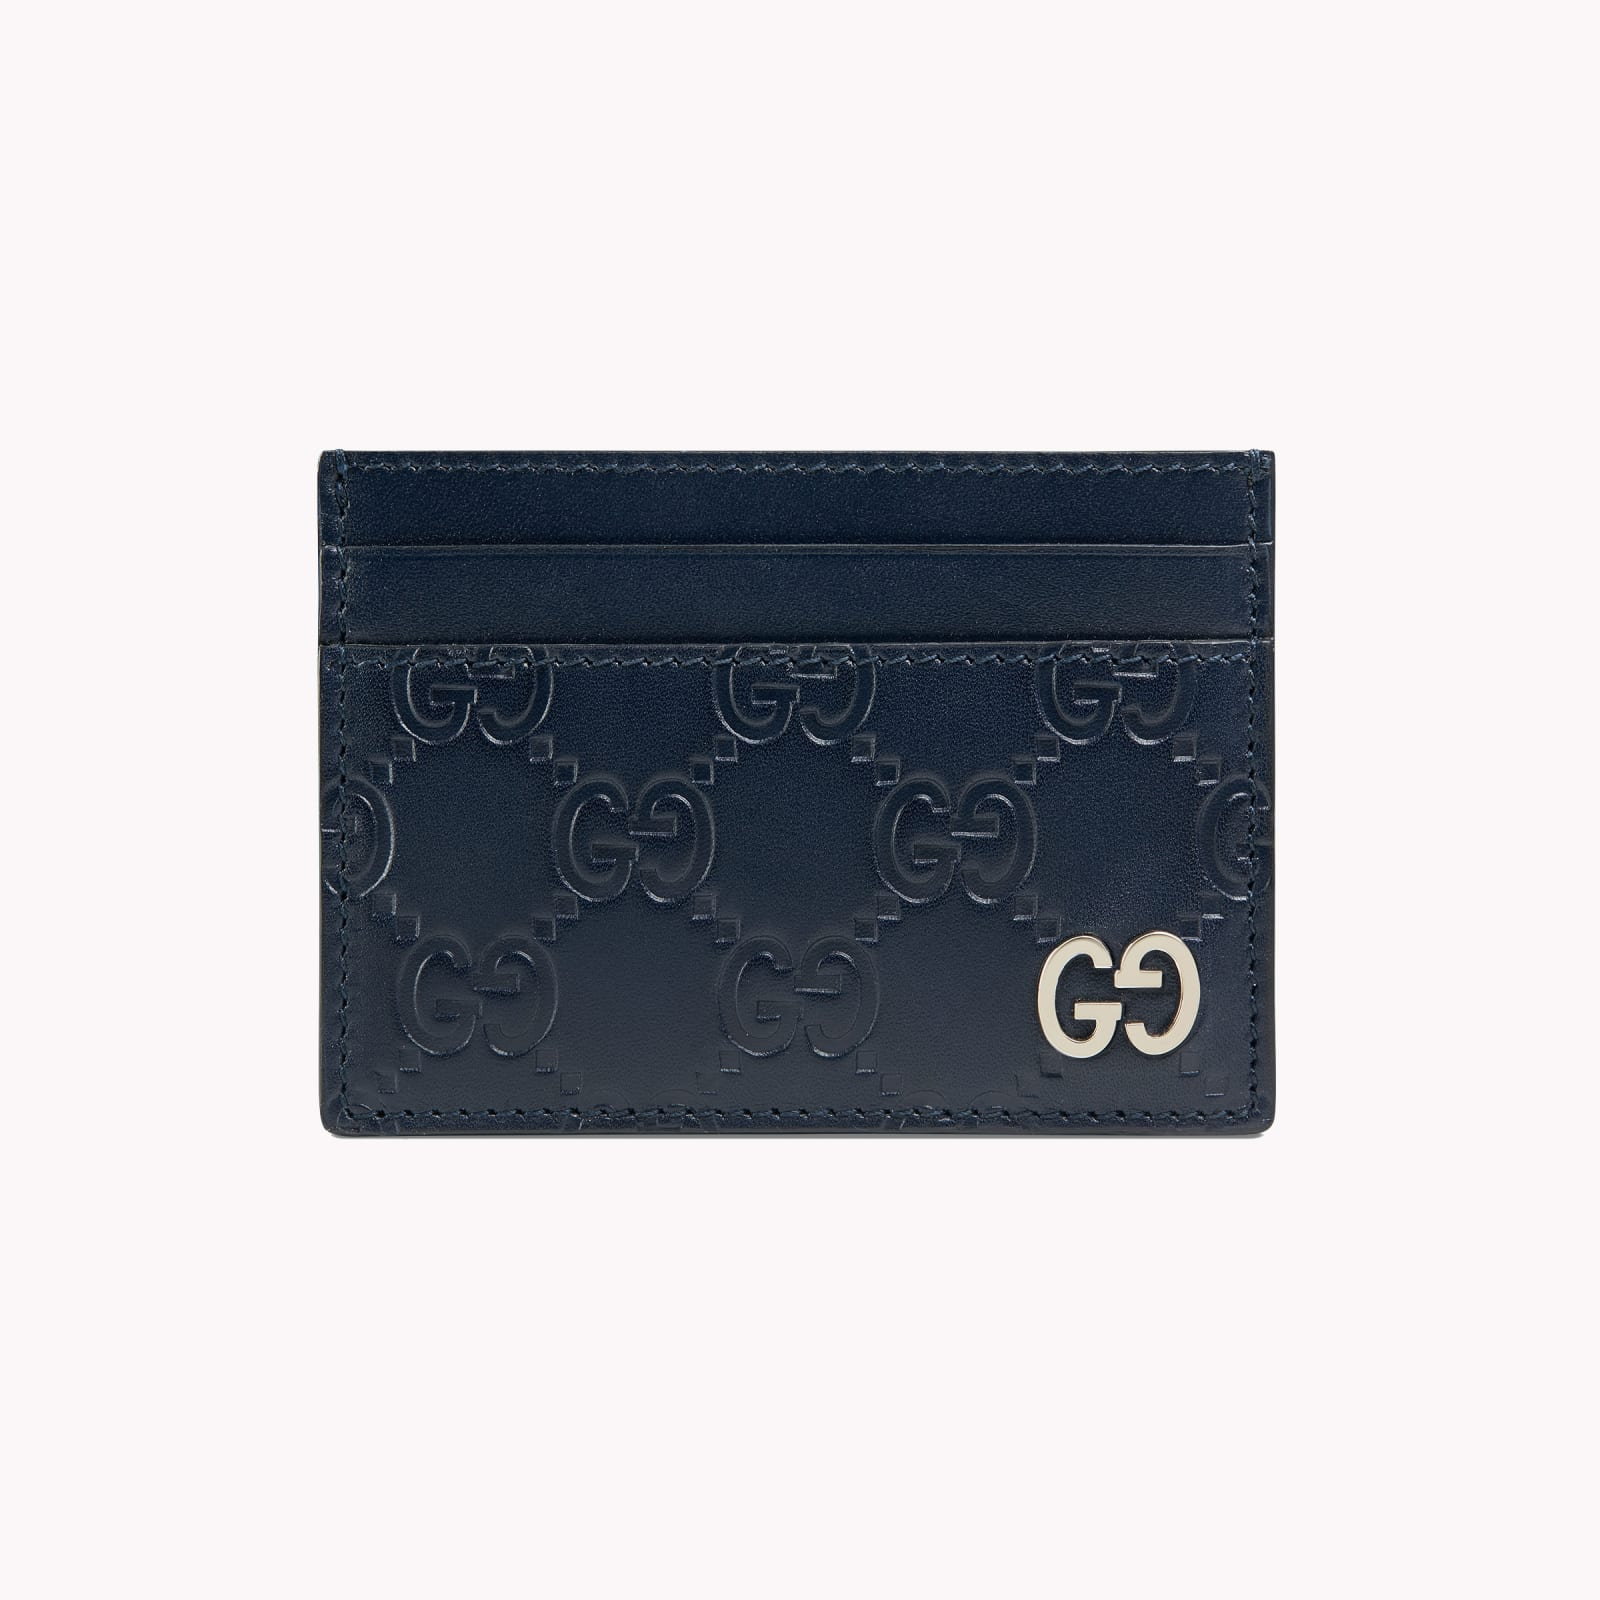 Gucci Signature blue leather card holder